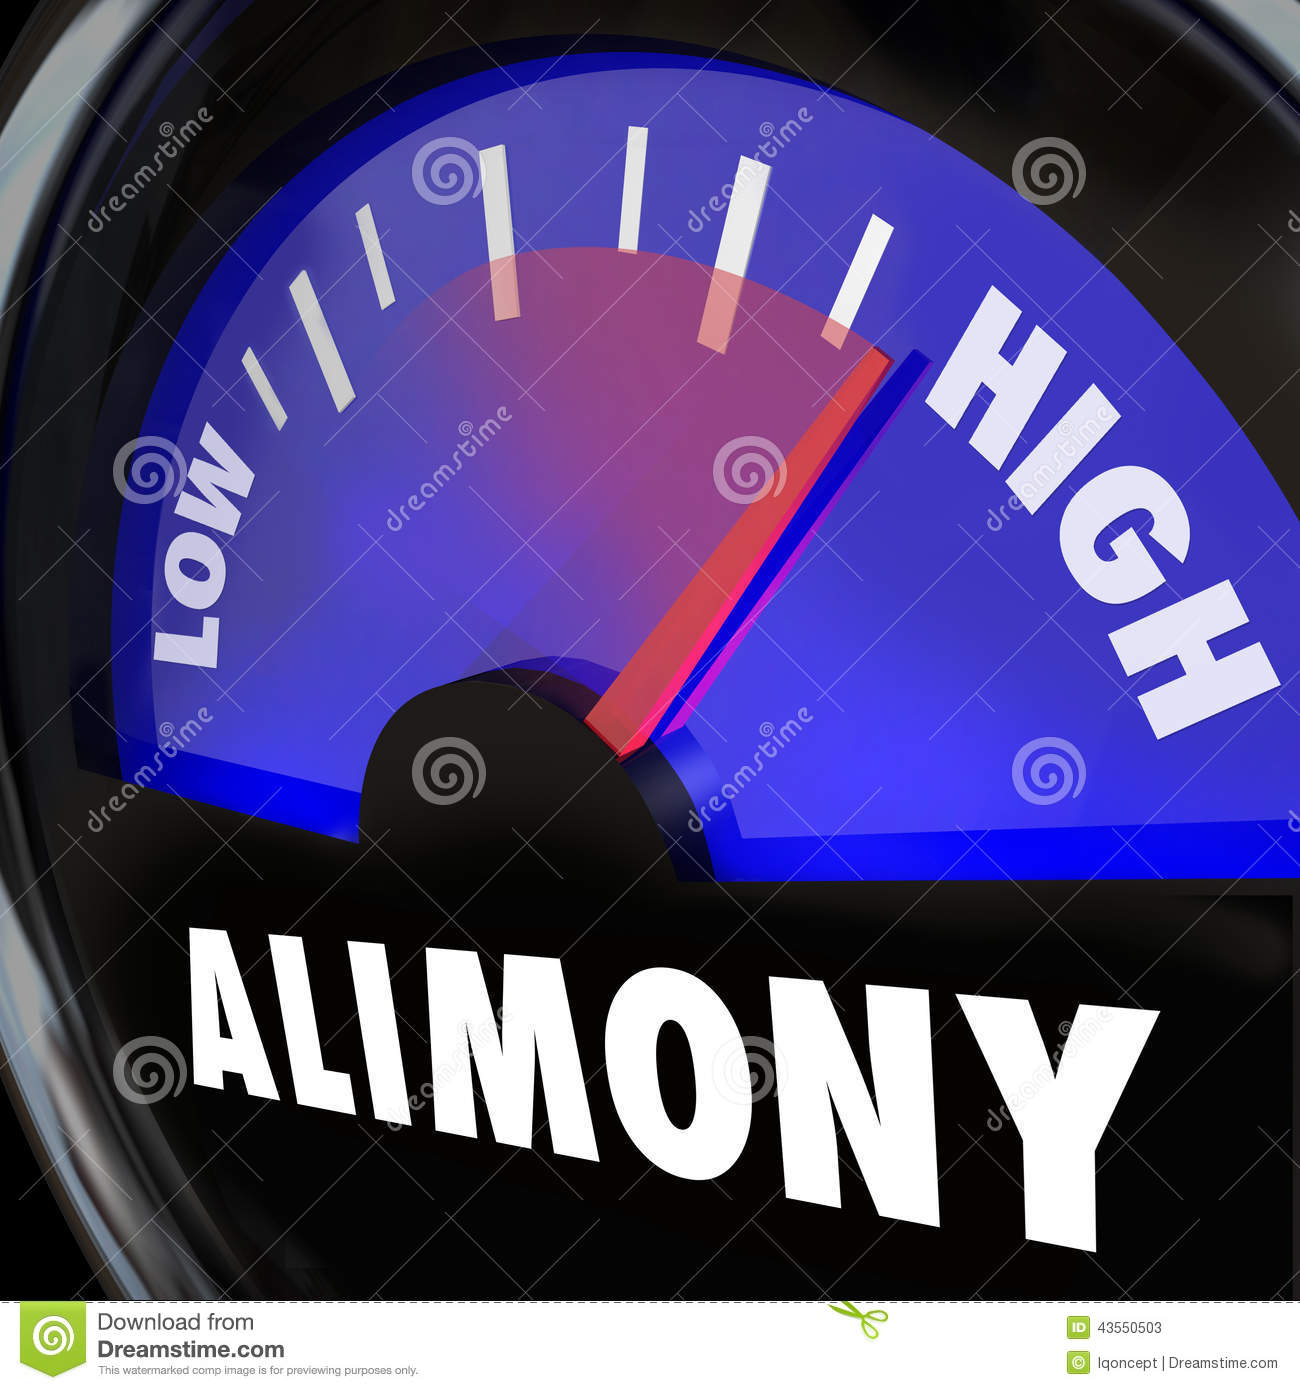 Alimony spousal support